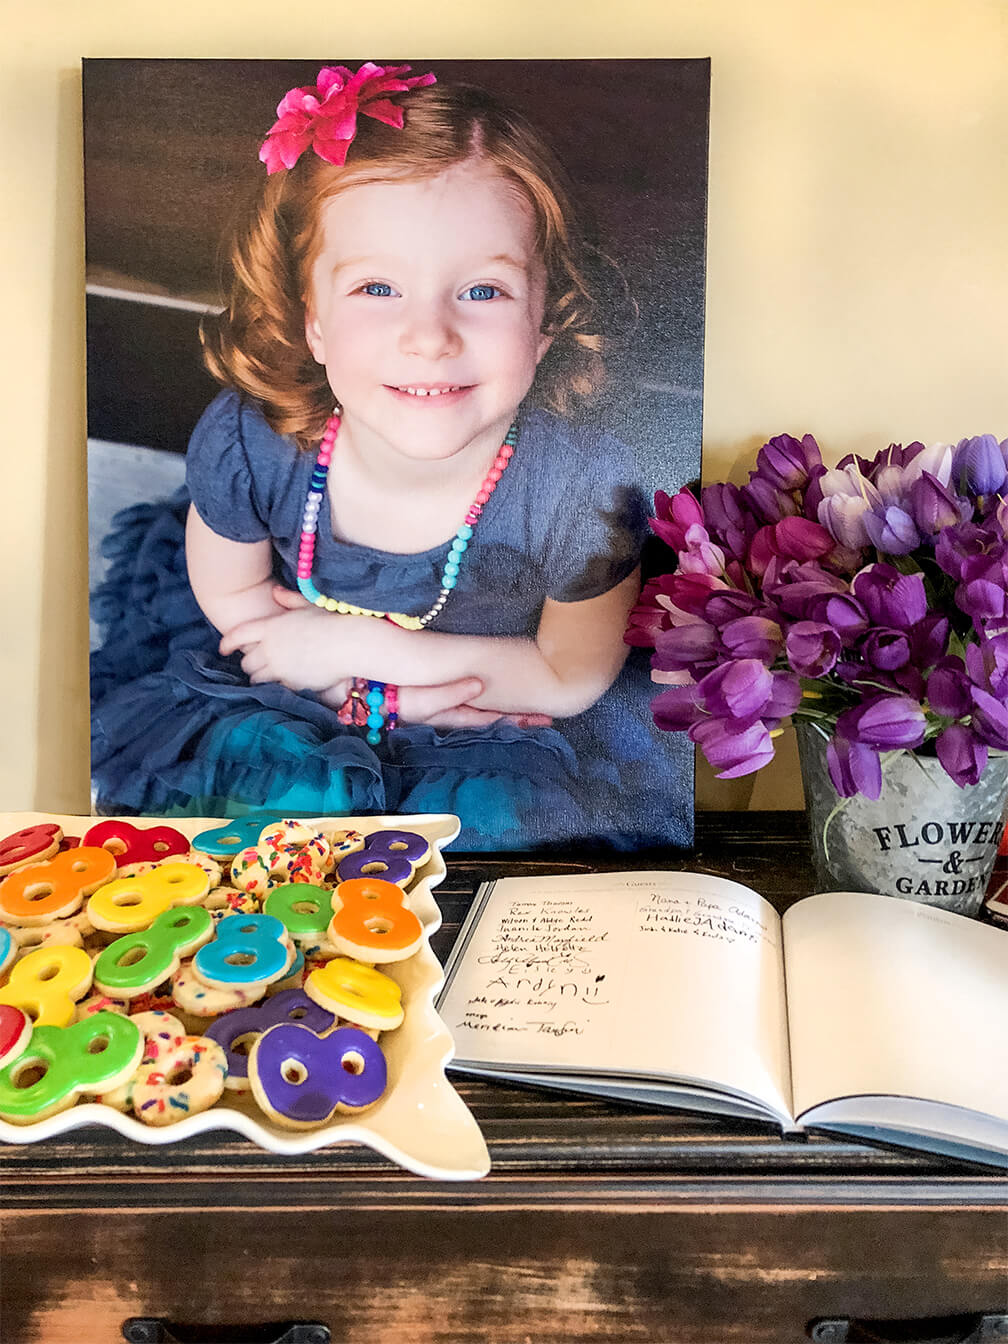 Child photo, Memory book, and sugar cookie 8's for rainbow themed LDS baptism